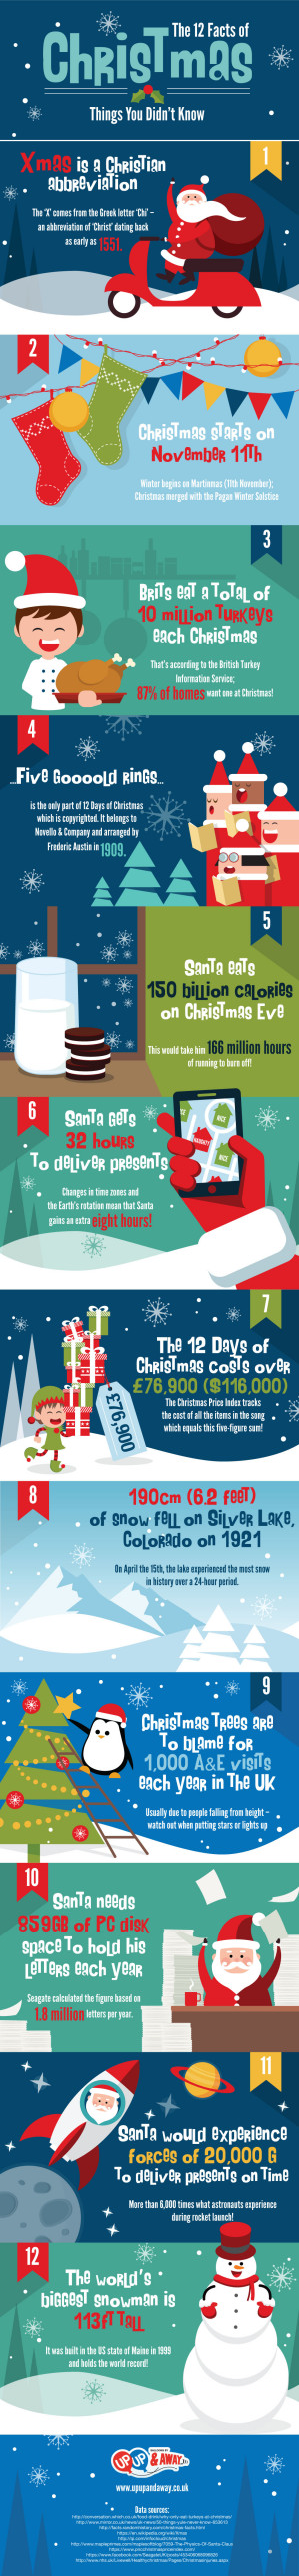 The 12 Facts of Christmas infographic